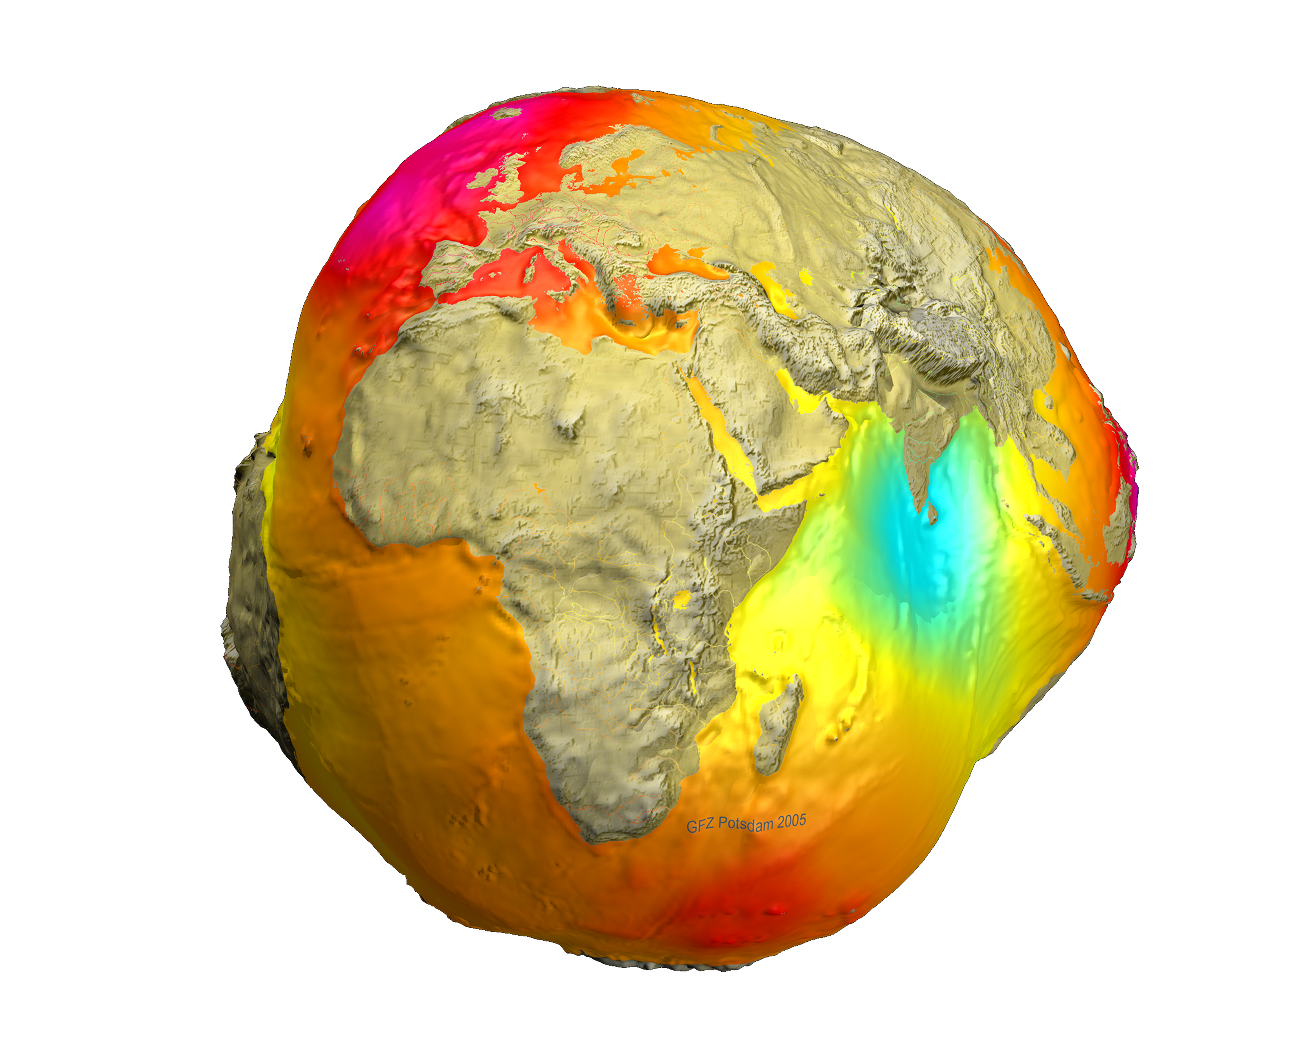 The shape of the Earth is close to an ellipsoid. But the exact shape is the geoid, which differs by approx. ± 100 m from the reference ellipsoid. Image: GFZ Potsdam